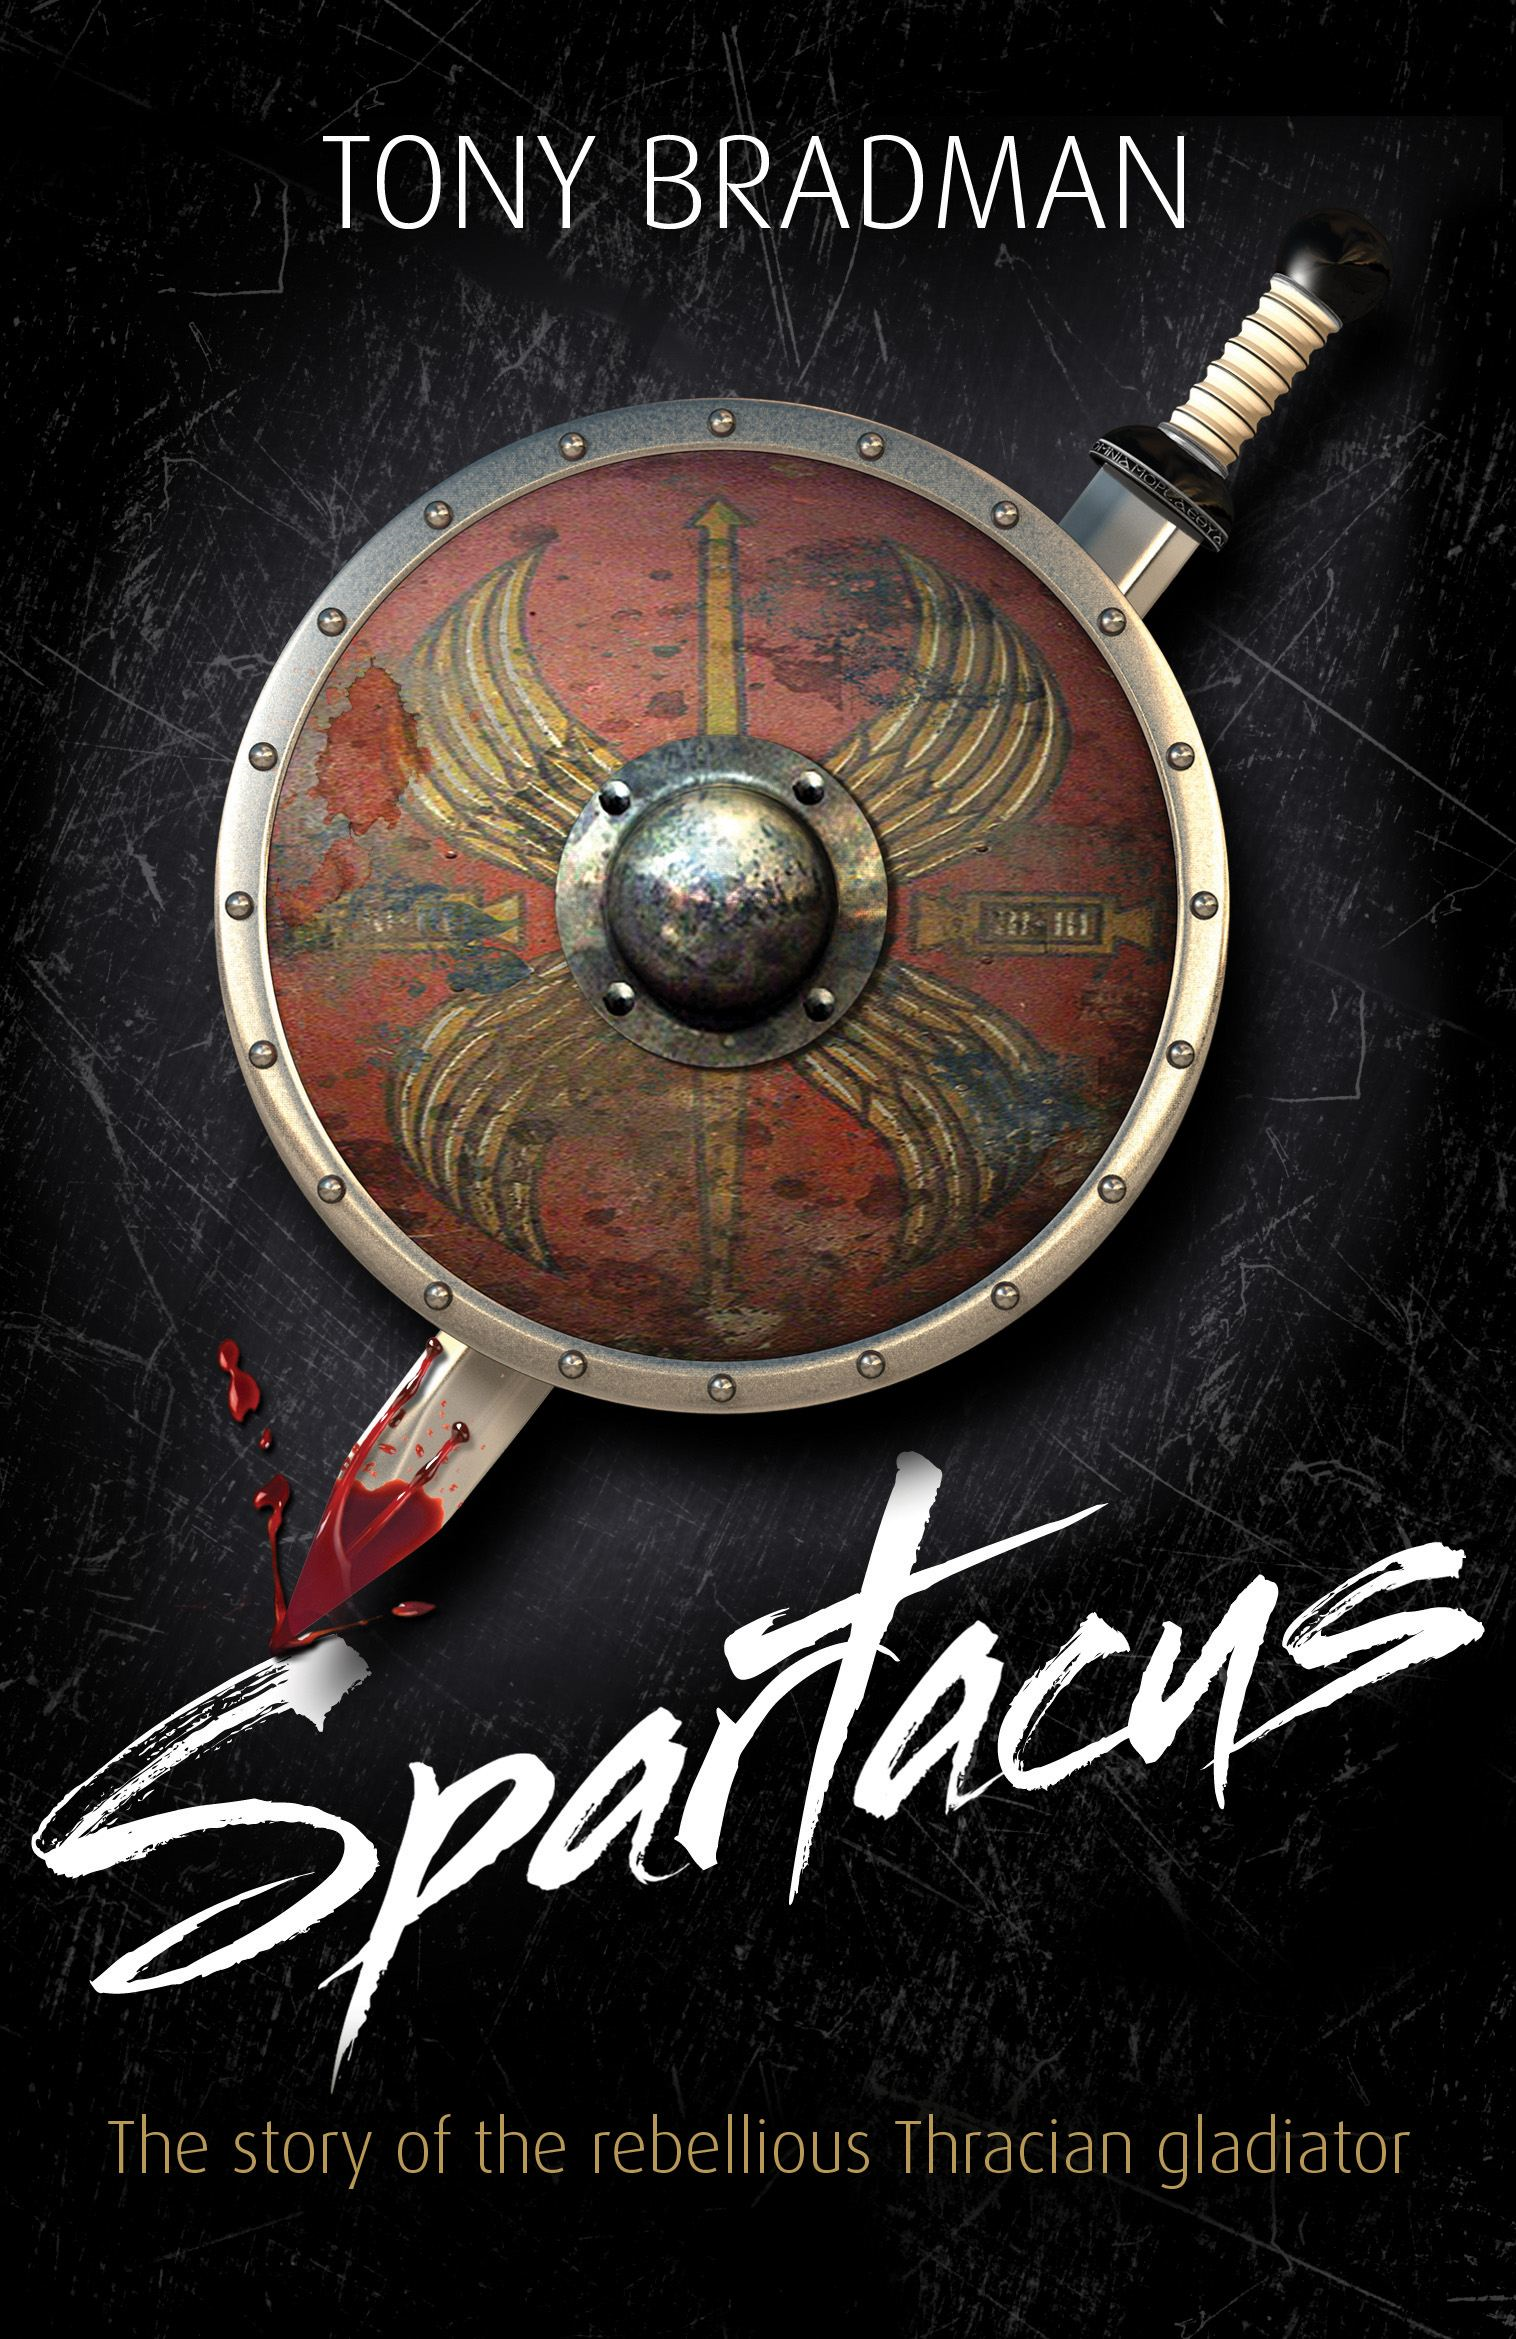 Spartacus The Story of the Rebellious Thracian Gladiator